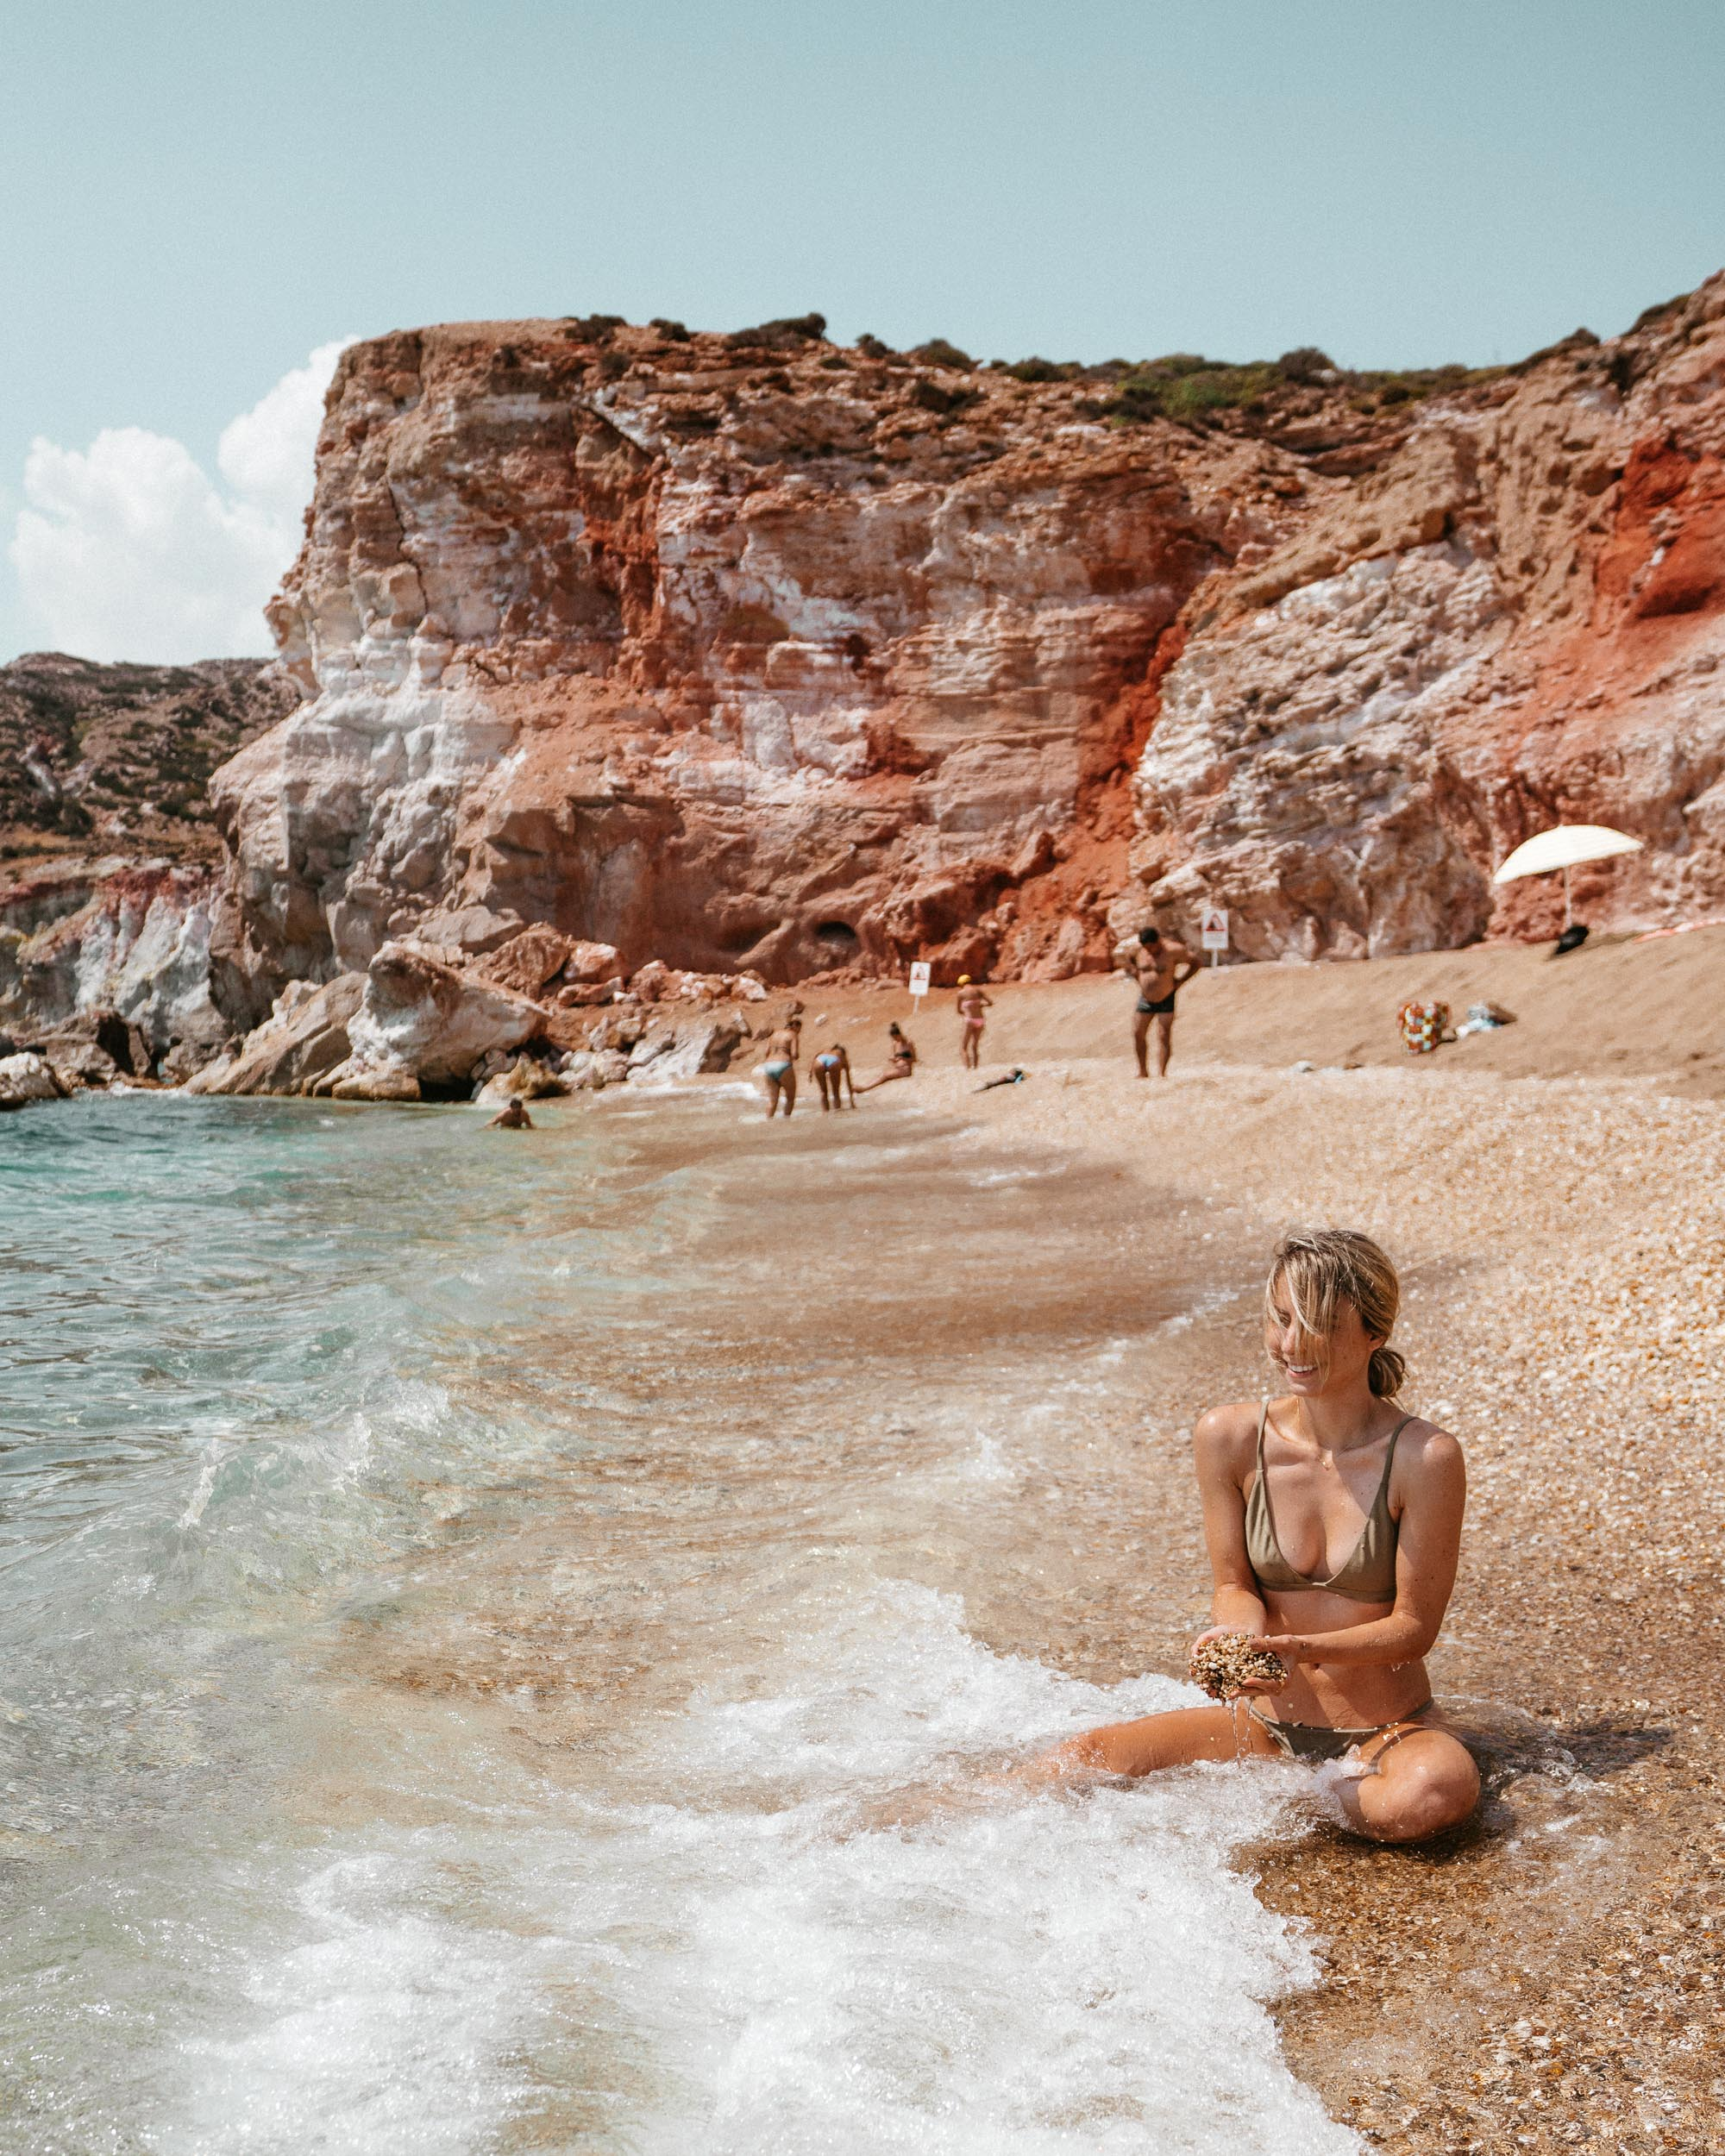 Paliochori red beach in Milos, Greece via @finduslost